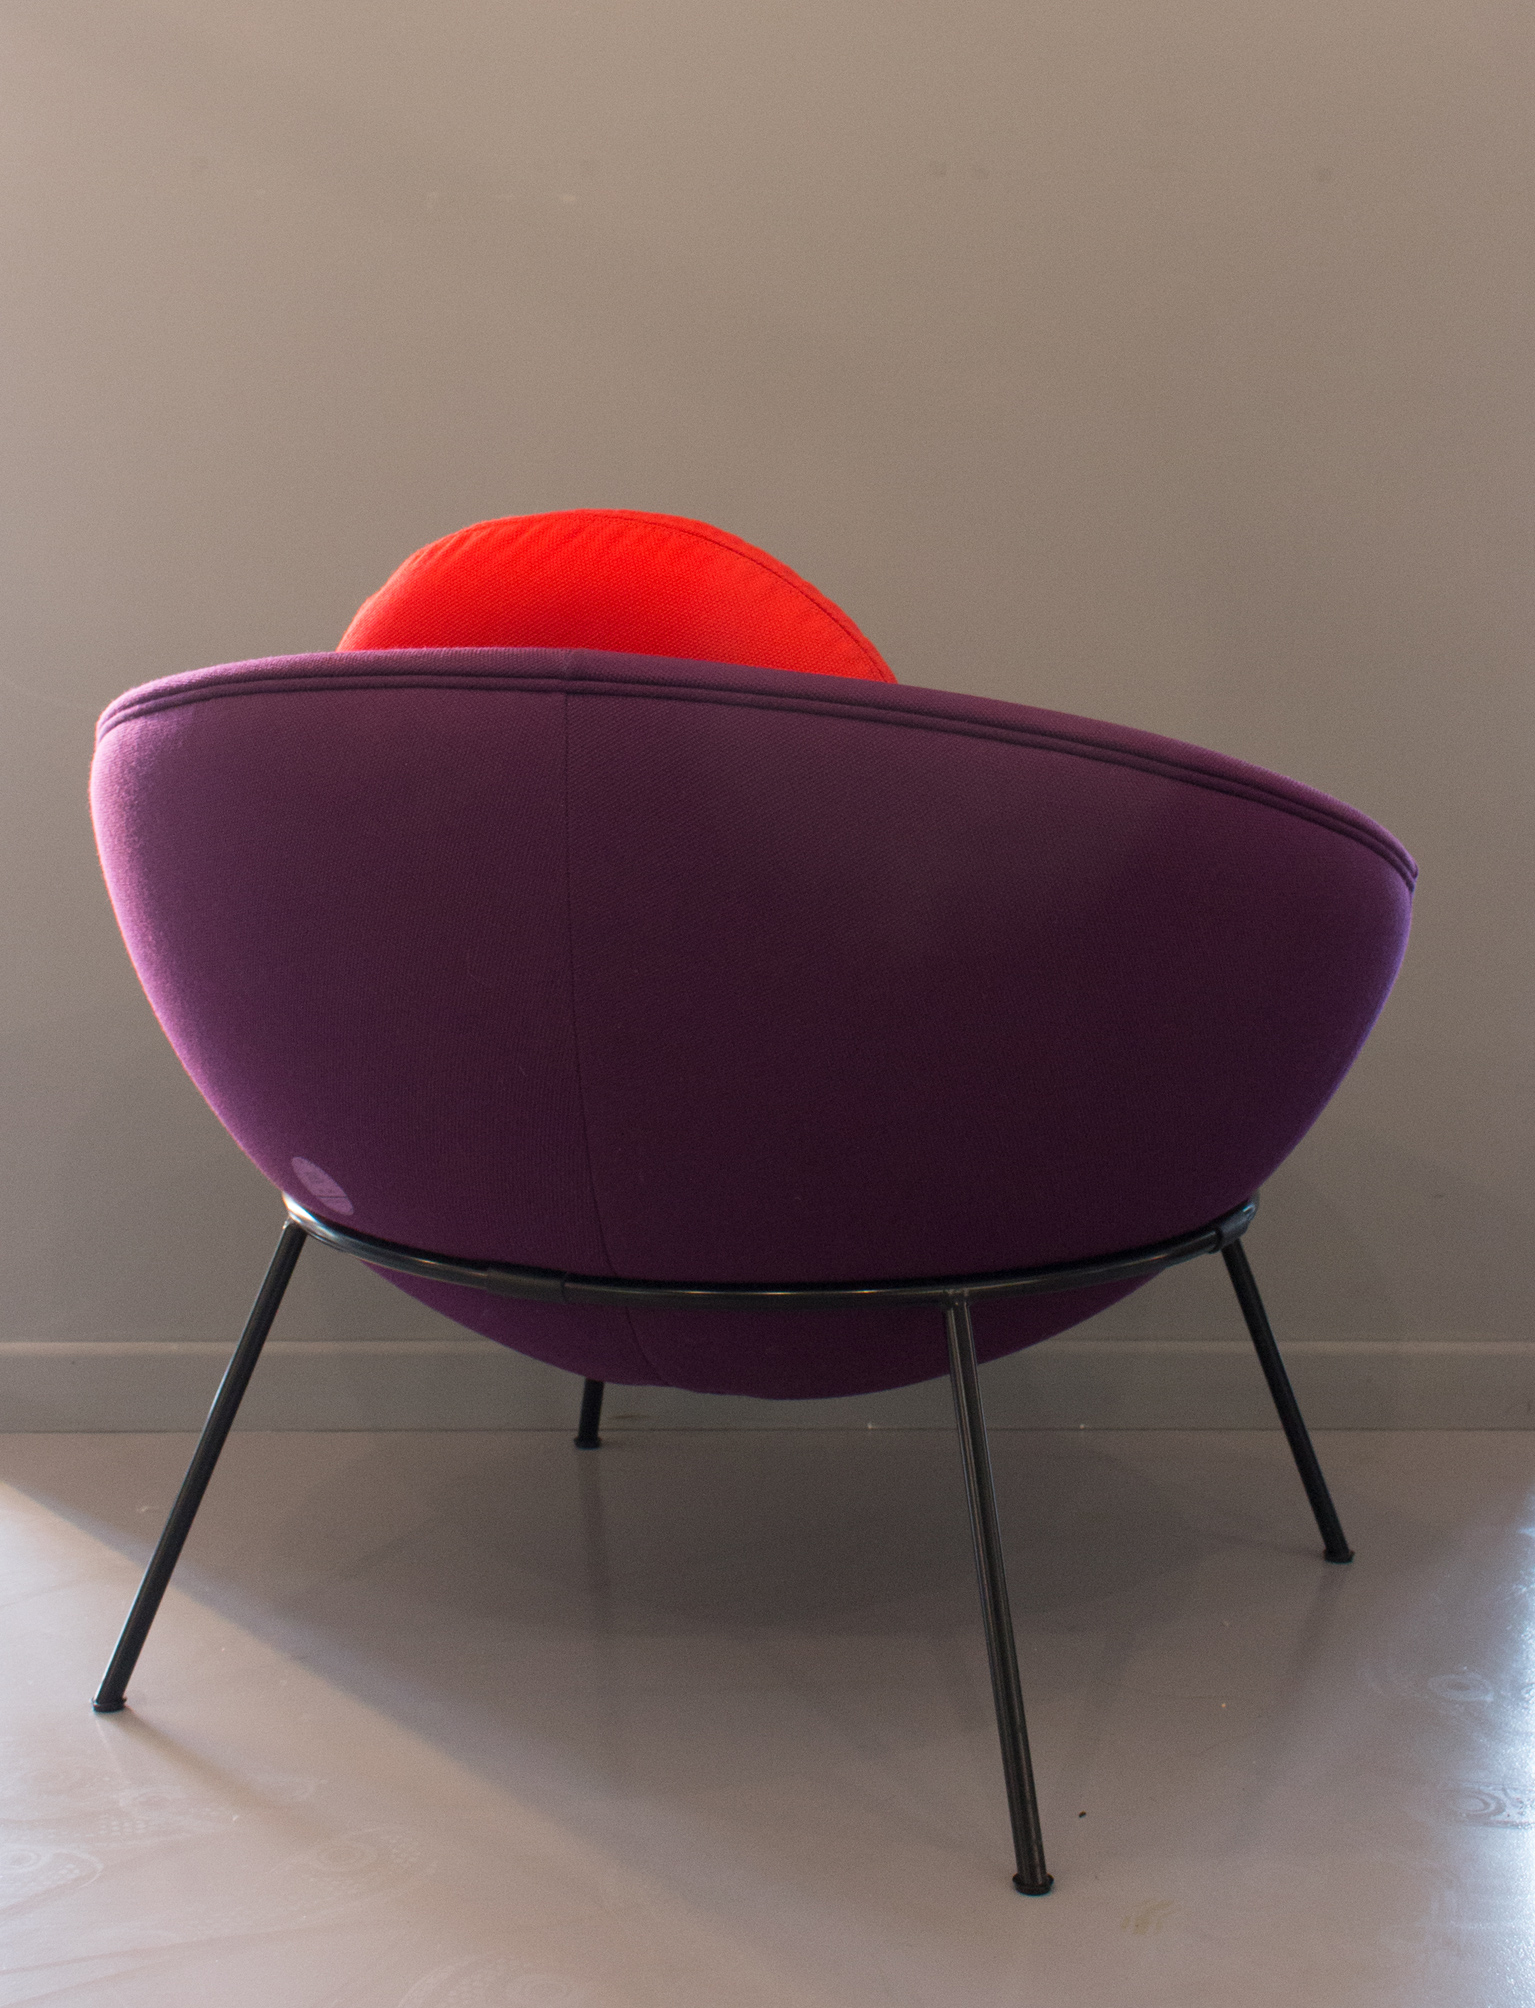 Bowl Chair, Arper - Deesup